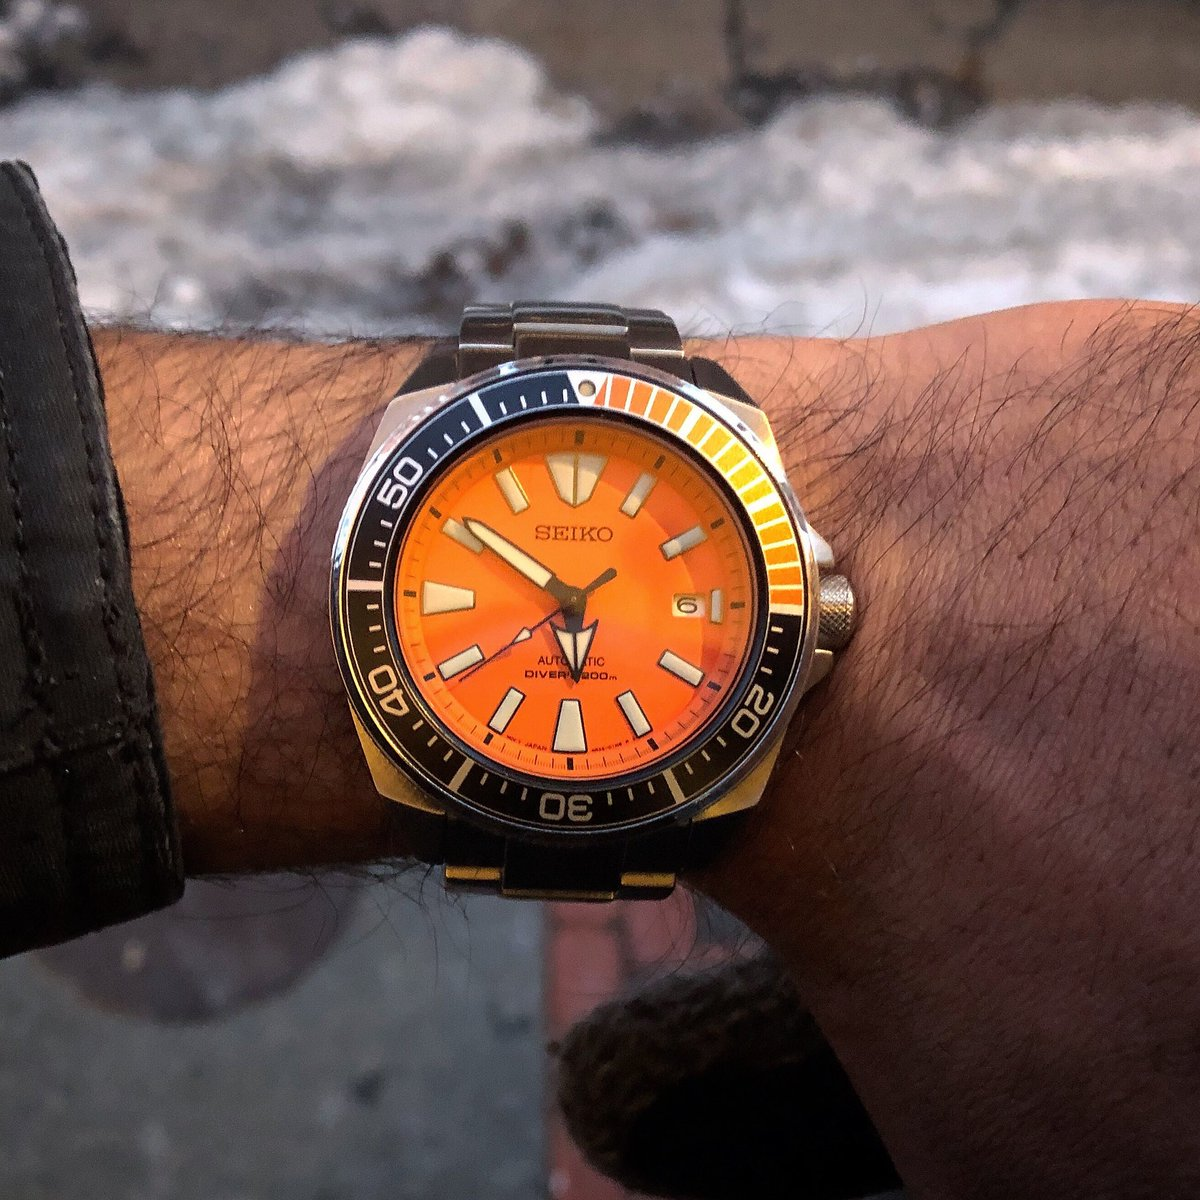 #WackyWednesday - who wears a bright orange watch in the middle of the week?  For our special episode on the Seiko Samurai, check out: https://t.co/WbtGnb4YFS  #Seiko #SeikoSamurai #watches #OrangeSamurai #SeikoDiver #wristwatchcheck @seikowatches https://t.co/uY5Uz40rm0